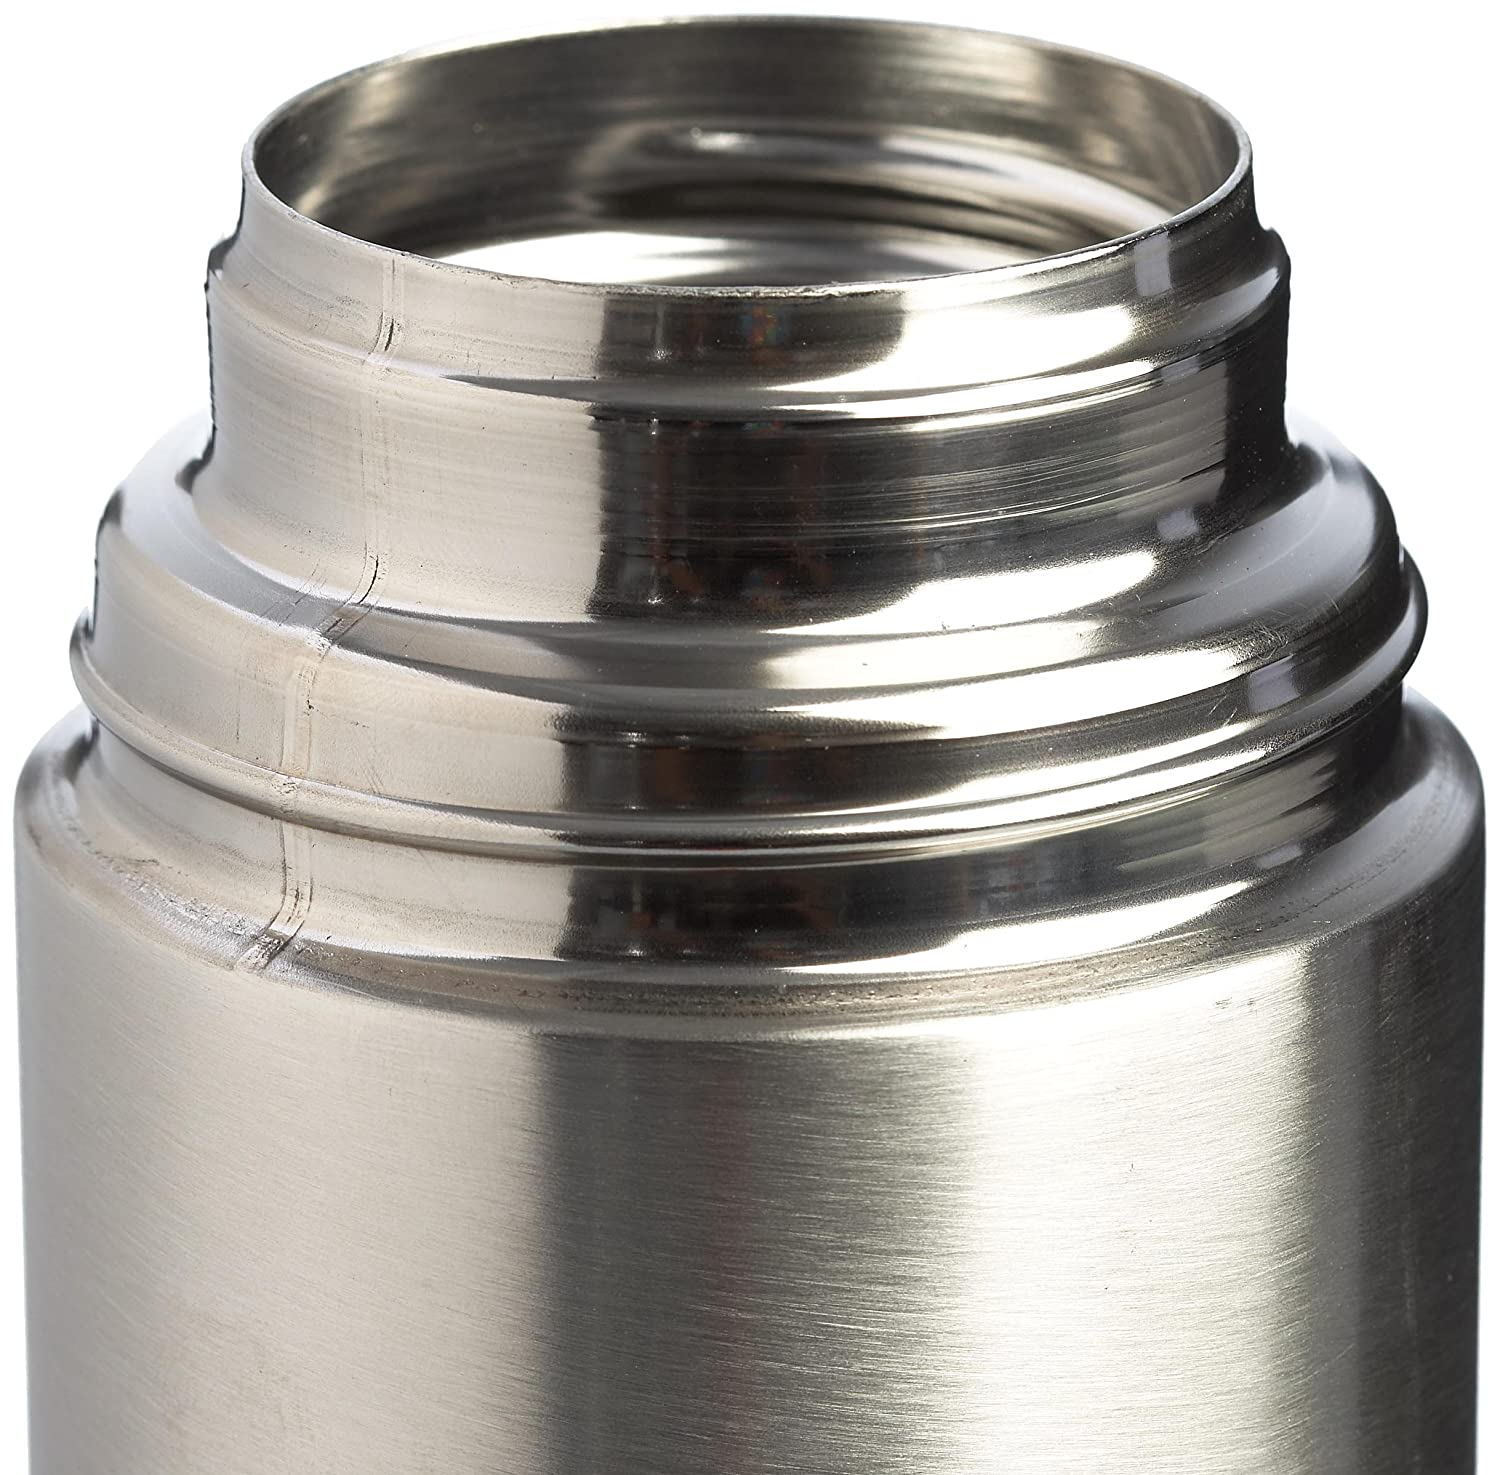 Steelworks Sigg Thermos Steelworks by Sigg Thermo